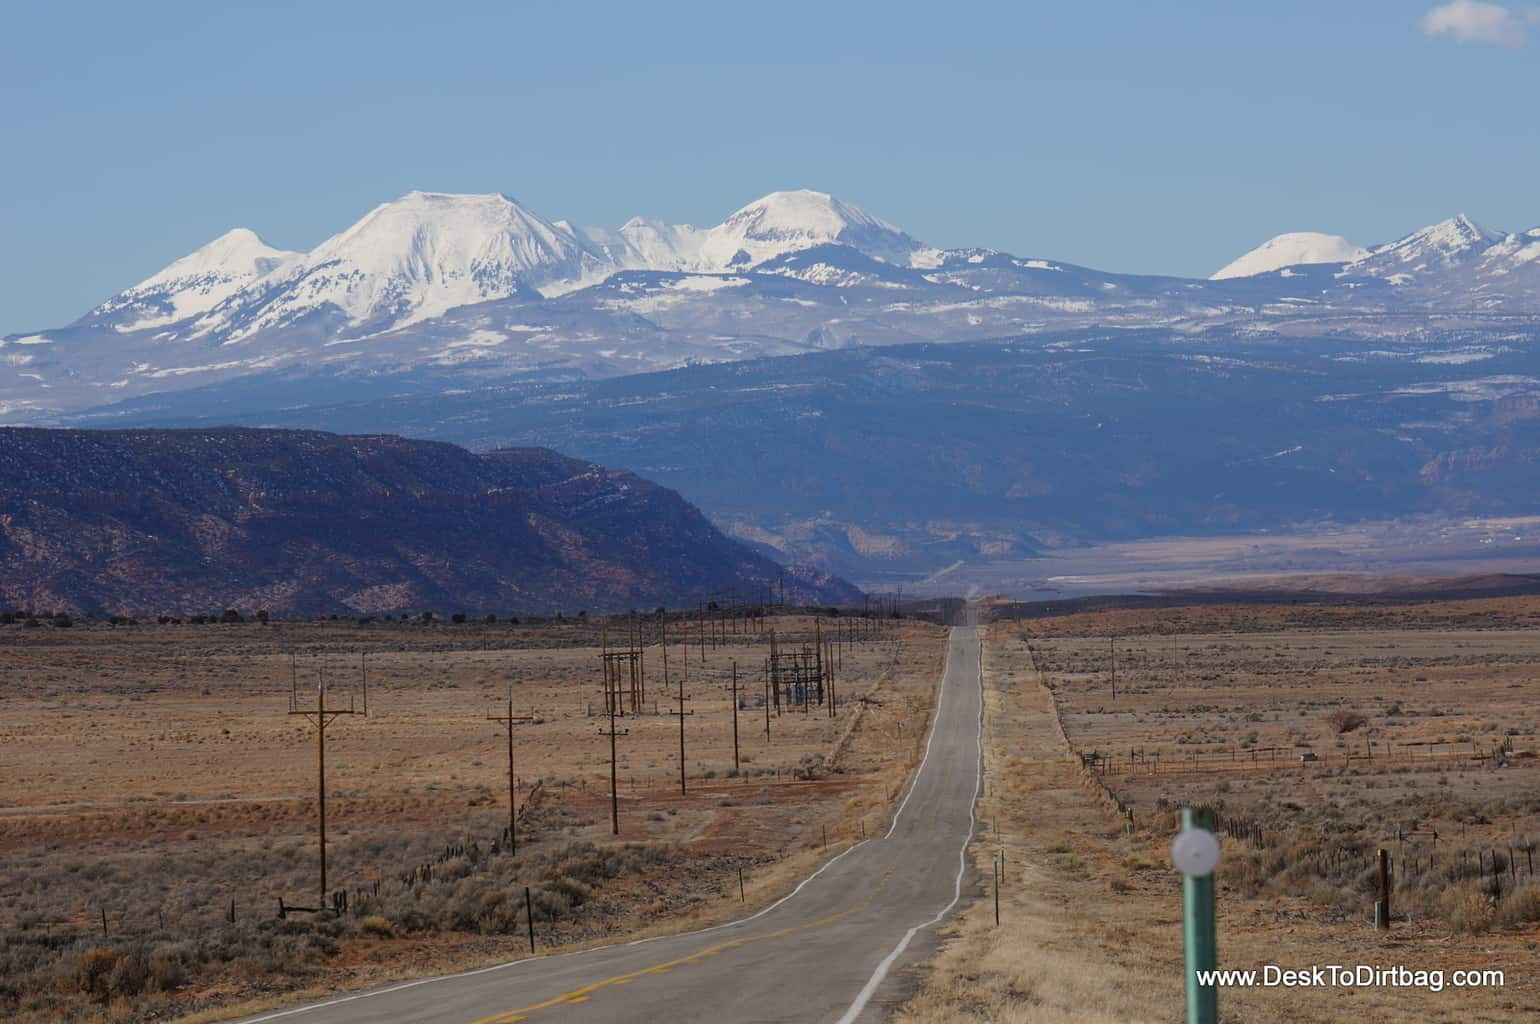 The La Sal Mountains of Utah as seen on the drive from Colorado.